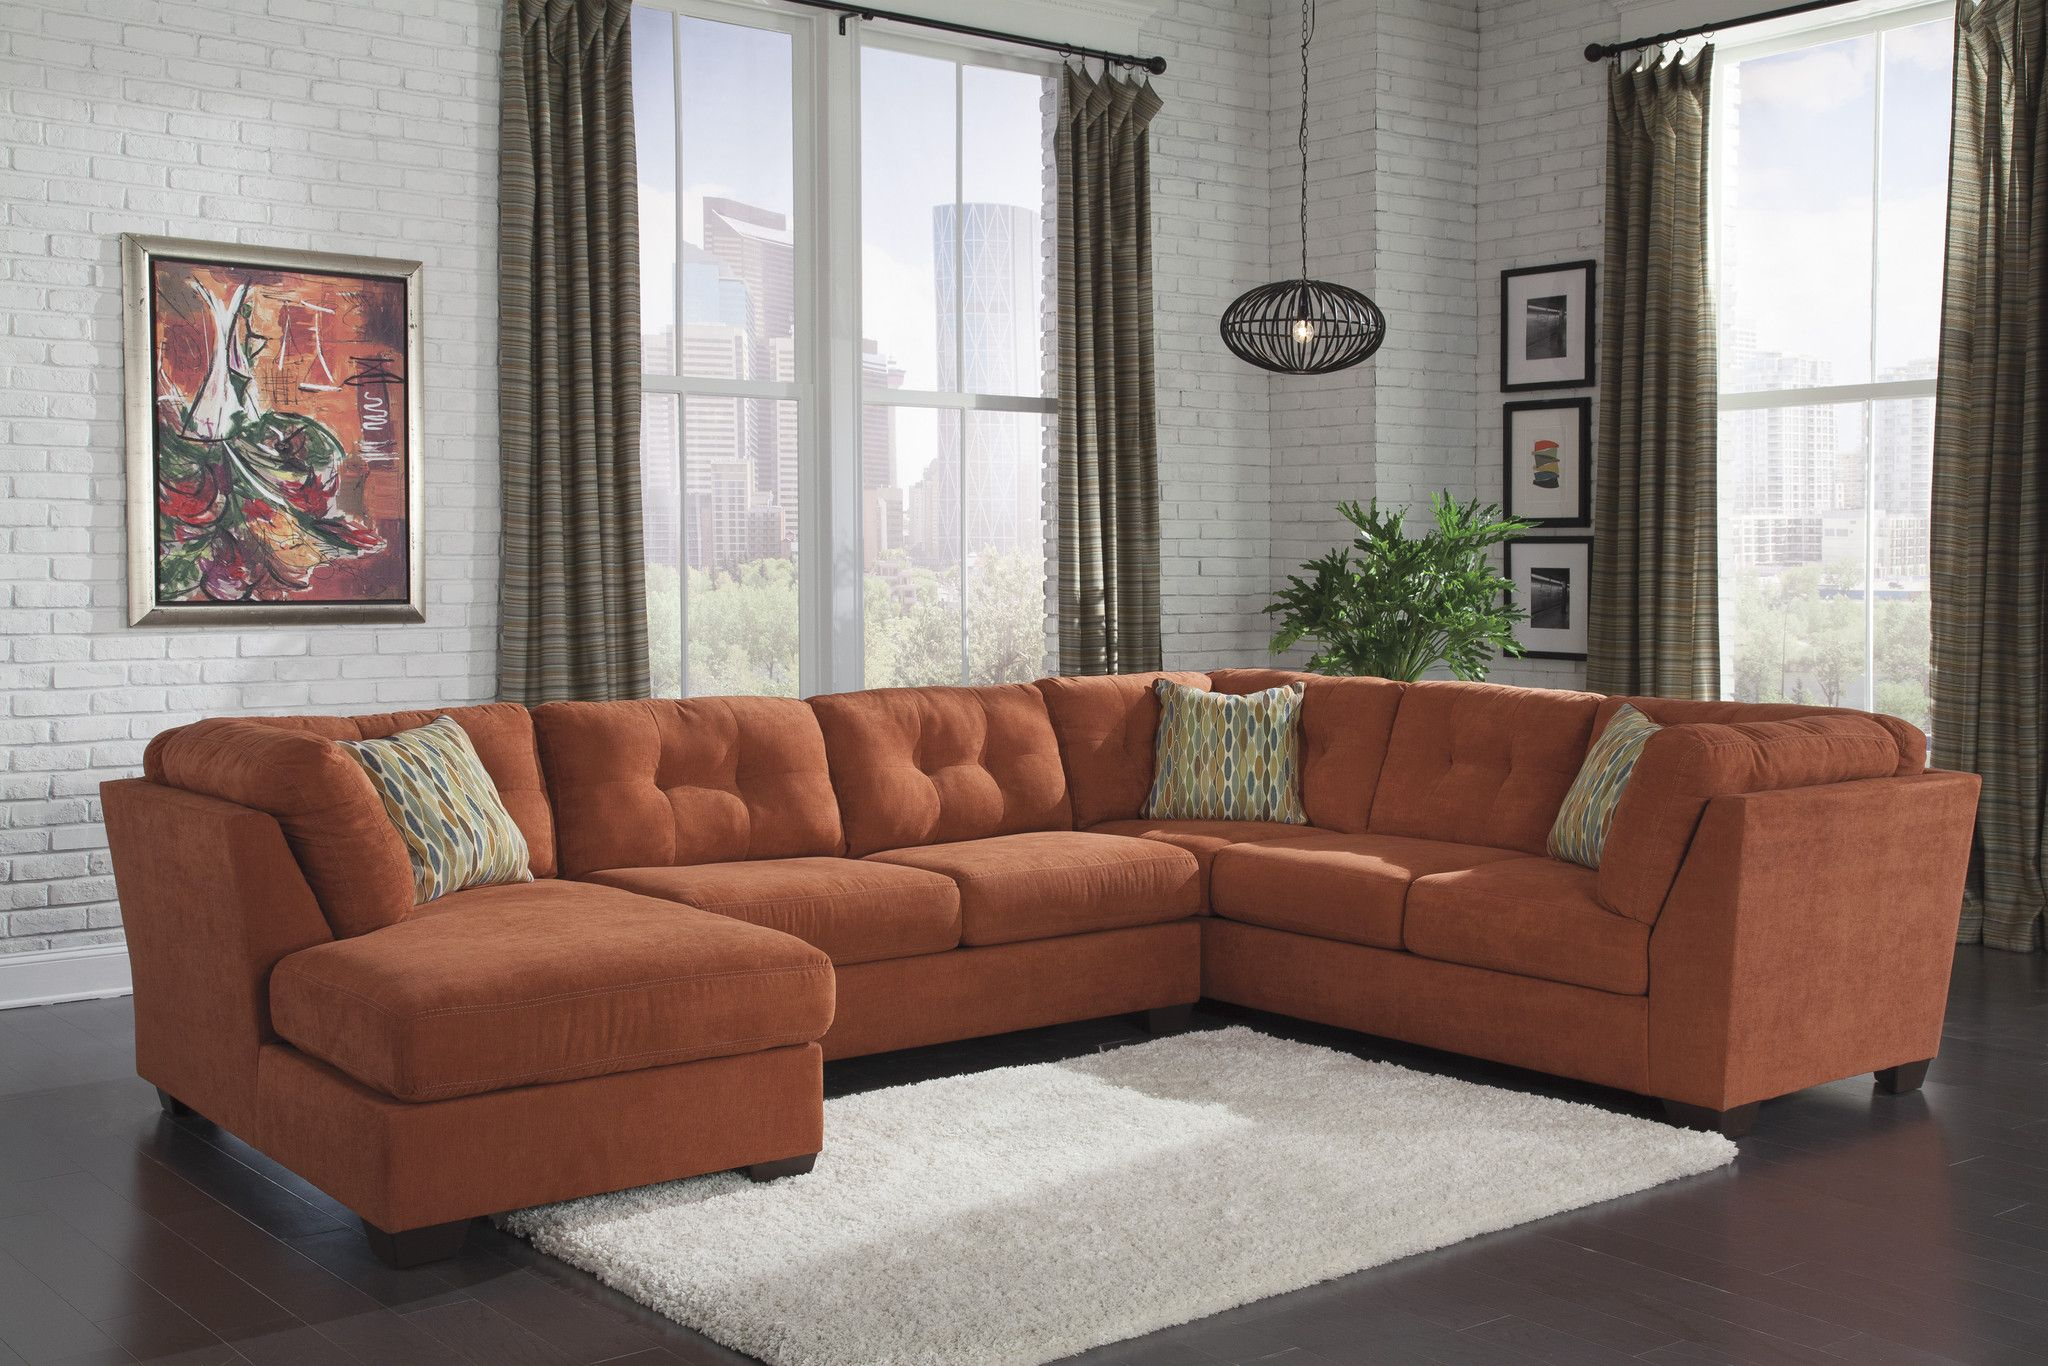 Ashley Furniture Delta City Orange Sectional Left 1970116 34 38